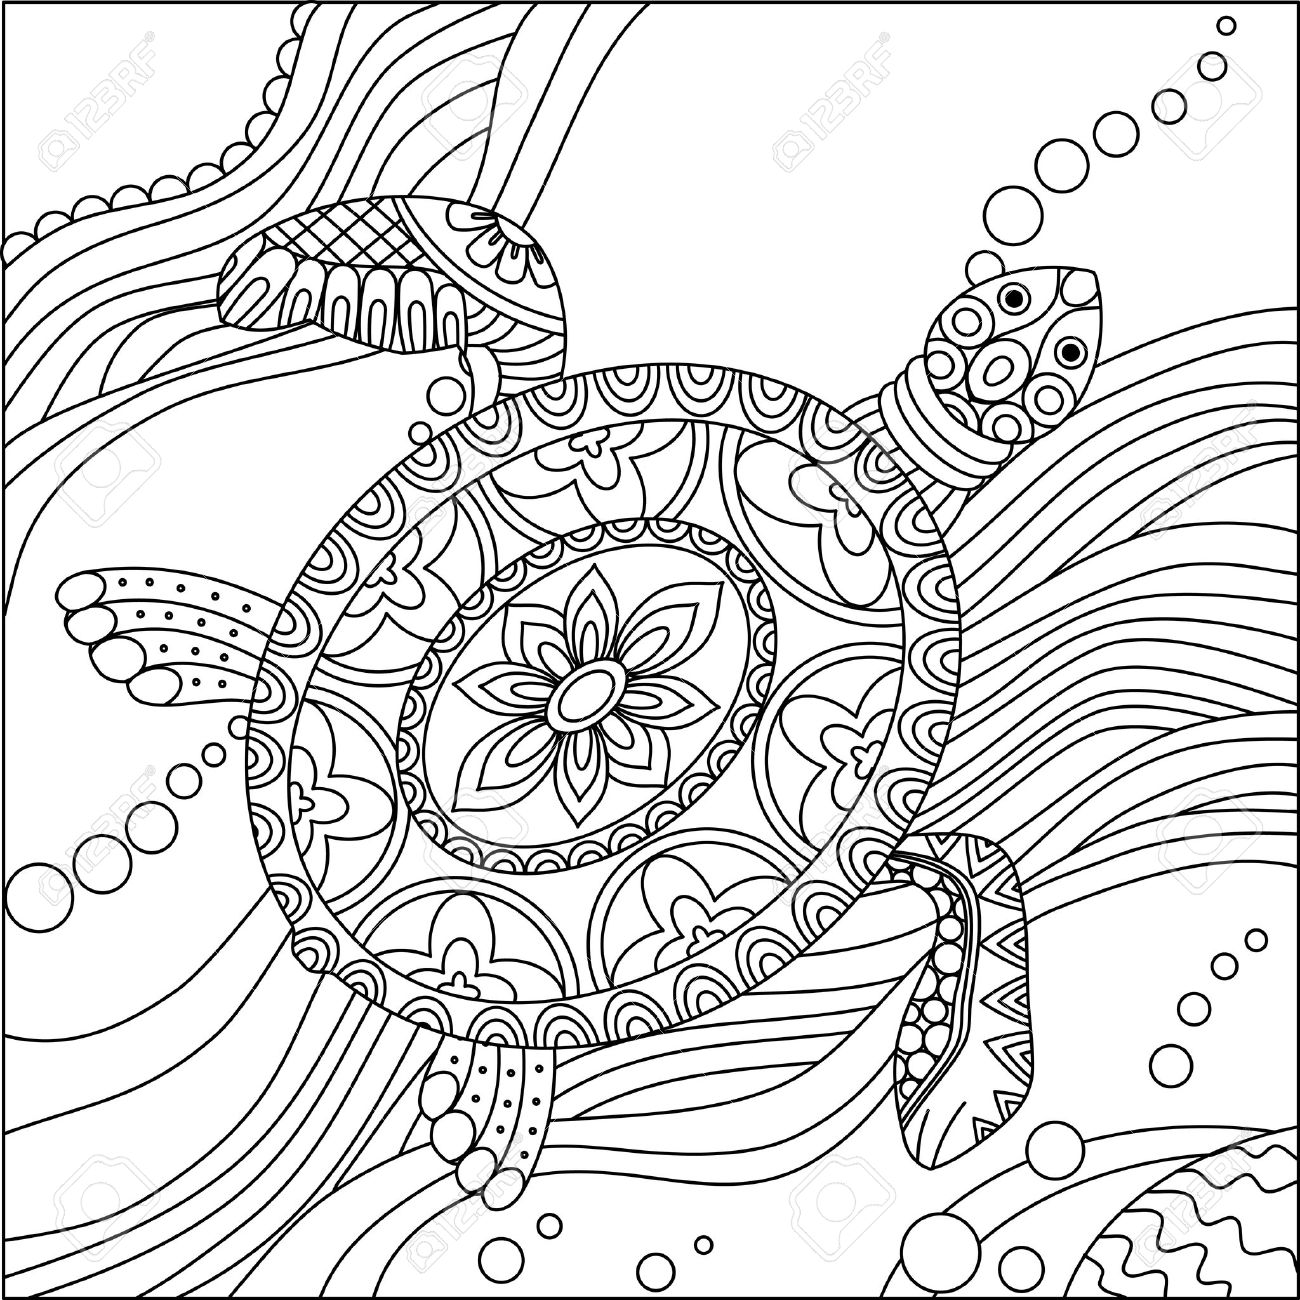 sea turtle doodle hand drawn vector illustration coloring book